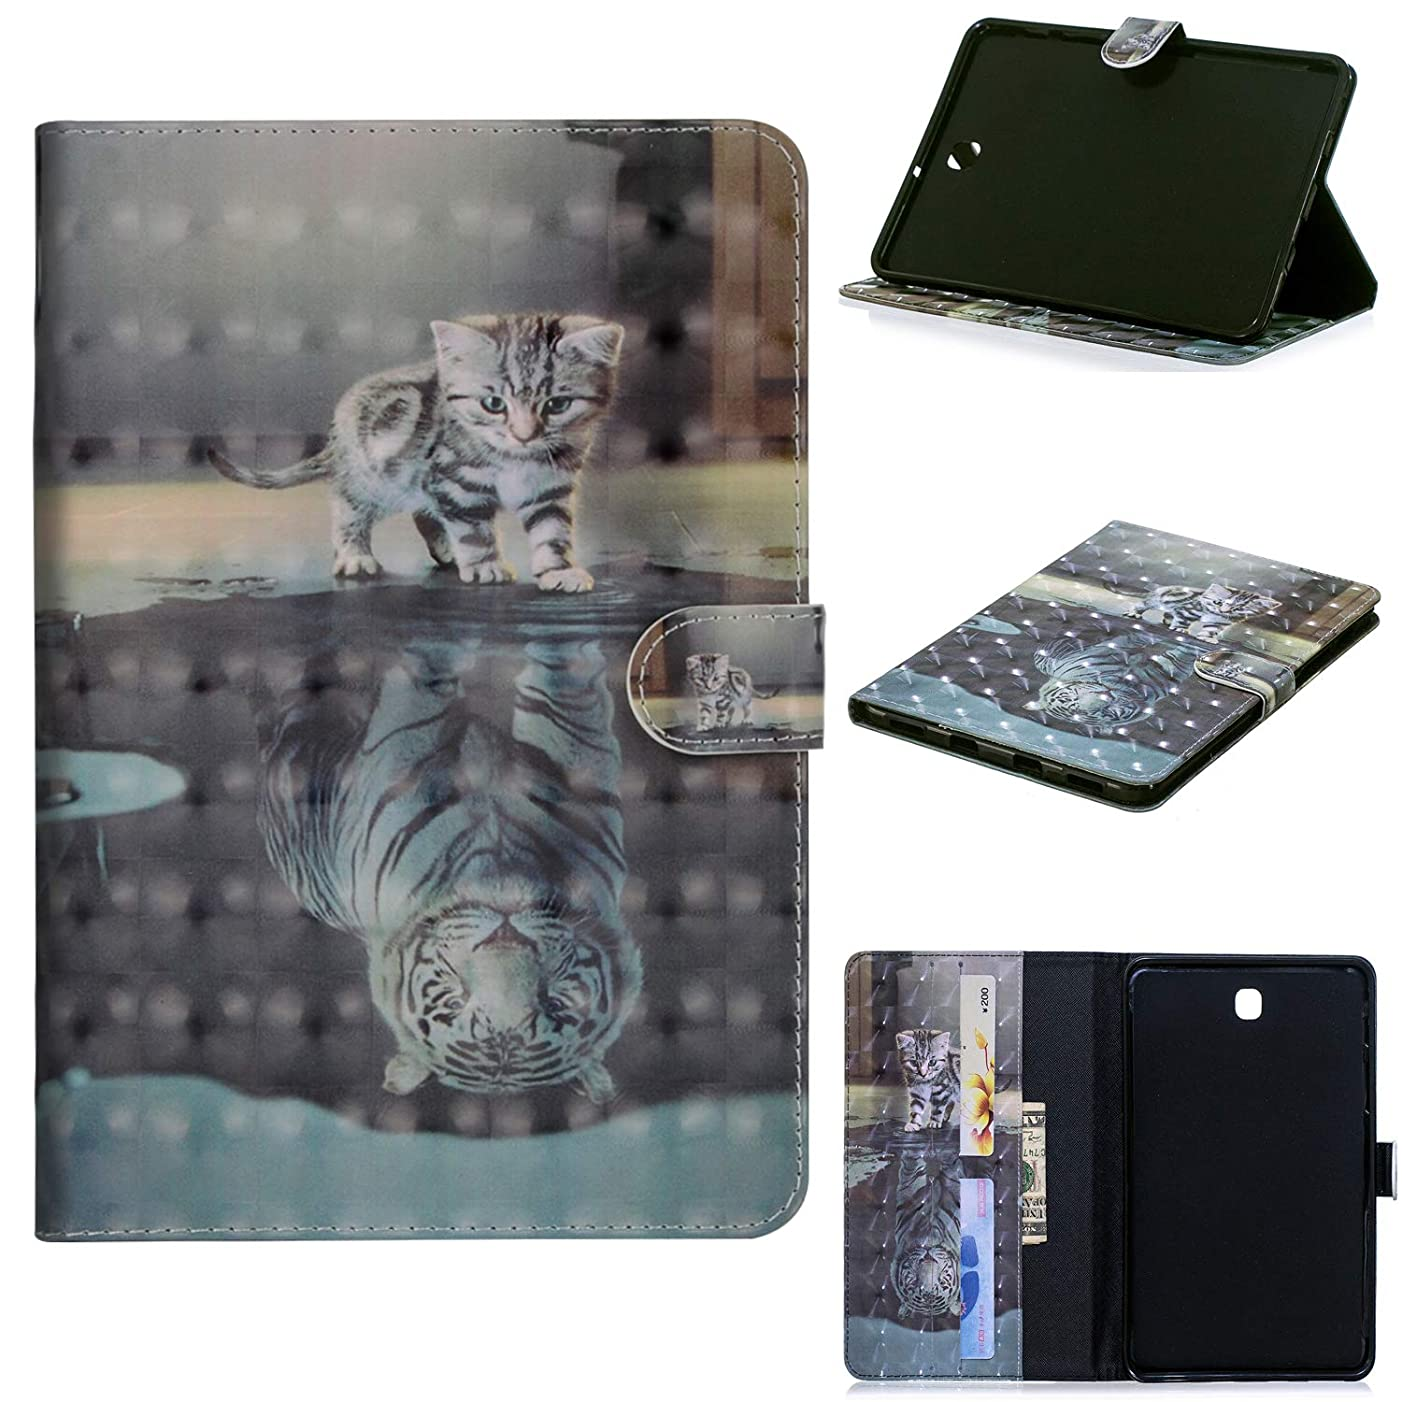 Galaxy Tab S2 8.0 PU Leather Case, CASE4YOU Flip Card Slots Wallet Book Style Stand Cover Shockproof Bumper with Wake Up/Sleep Cat Tiger for Samsung Galaxy Tab S2 8 Inch SM-T710/715/713/719